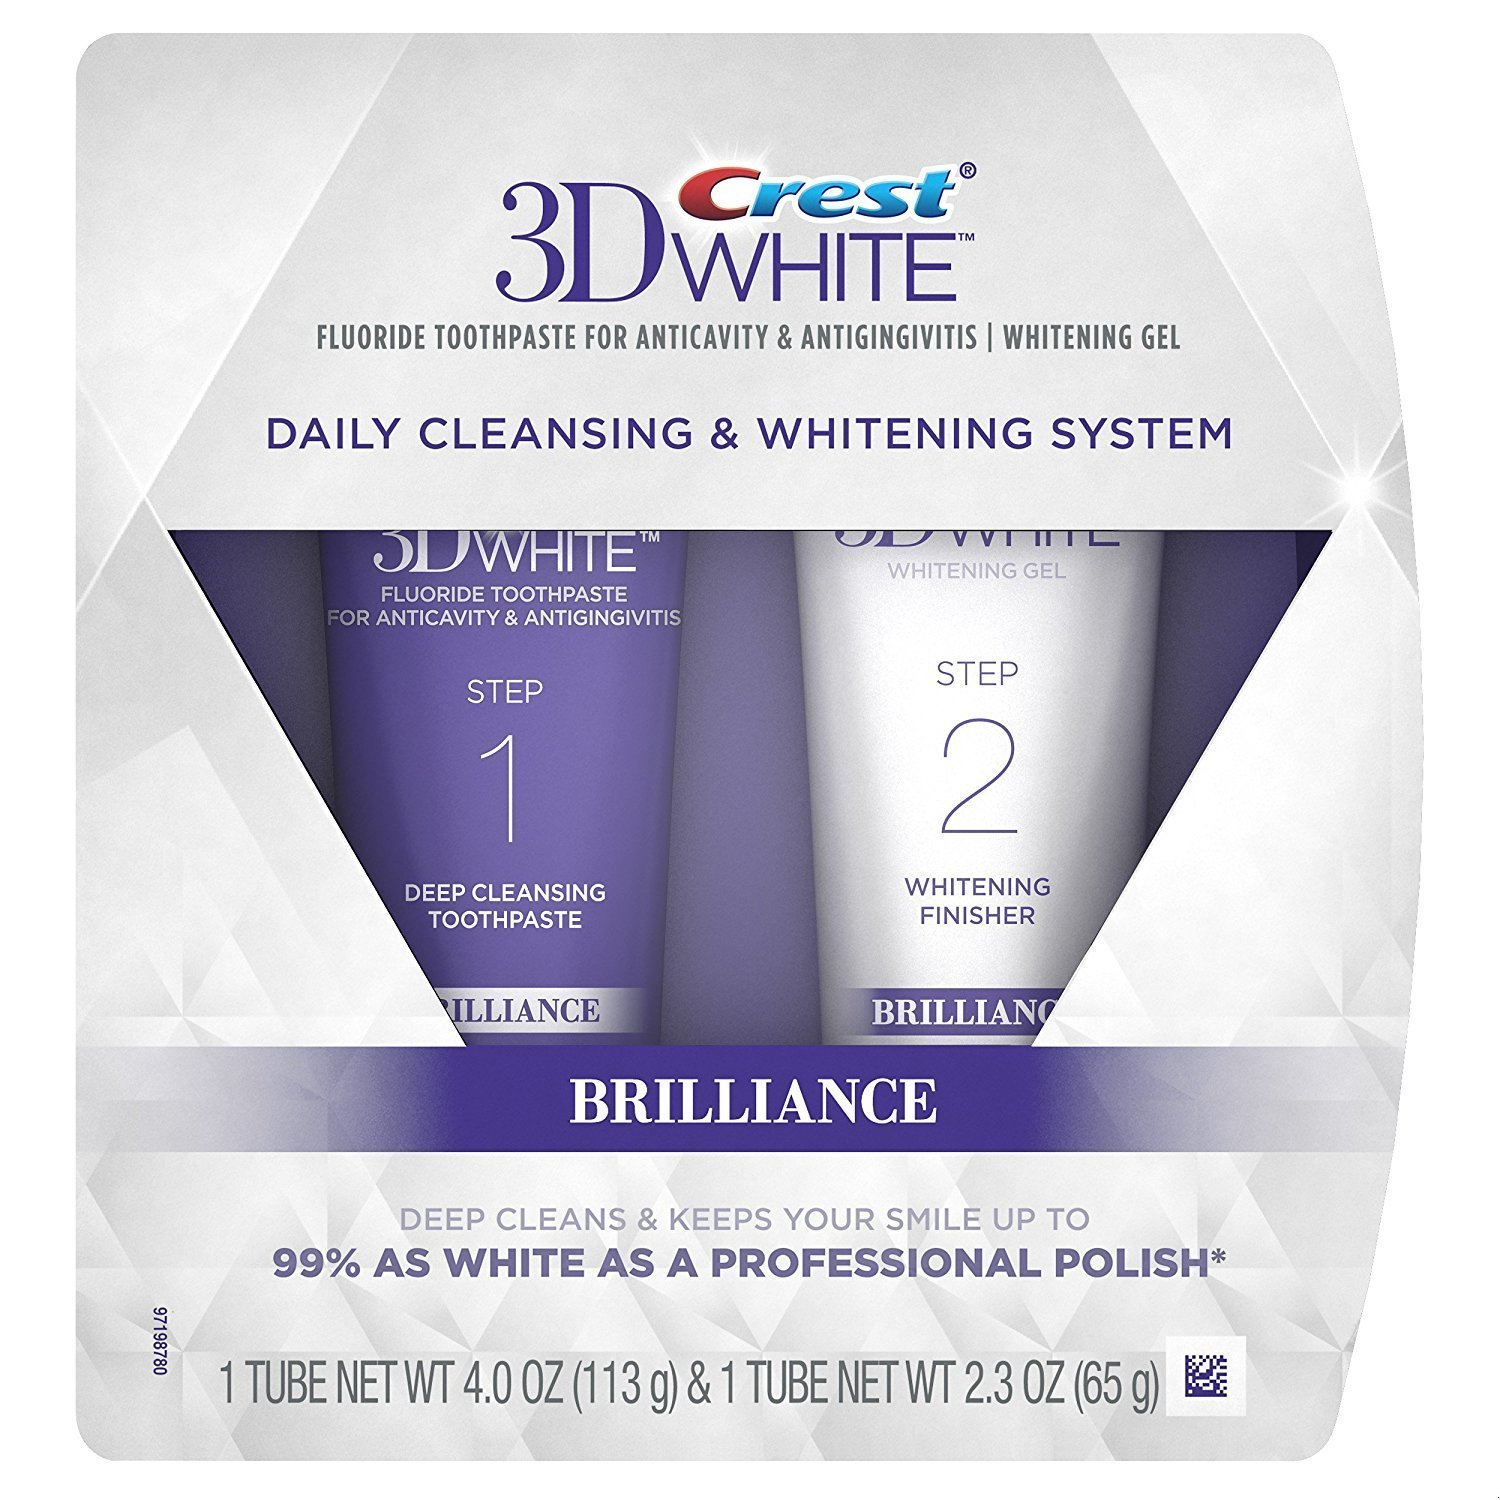 Crest 3D White Brilliance Daily Cleansing Toothpaste and Whitening Gel System, Total Weight 6.3 Oz